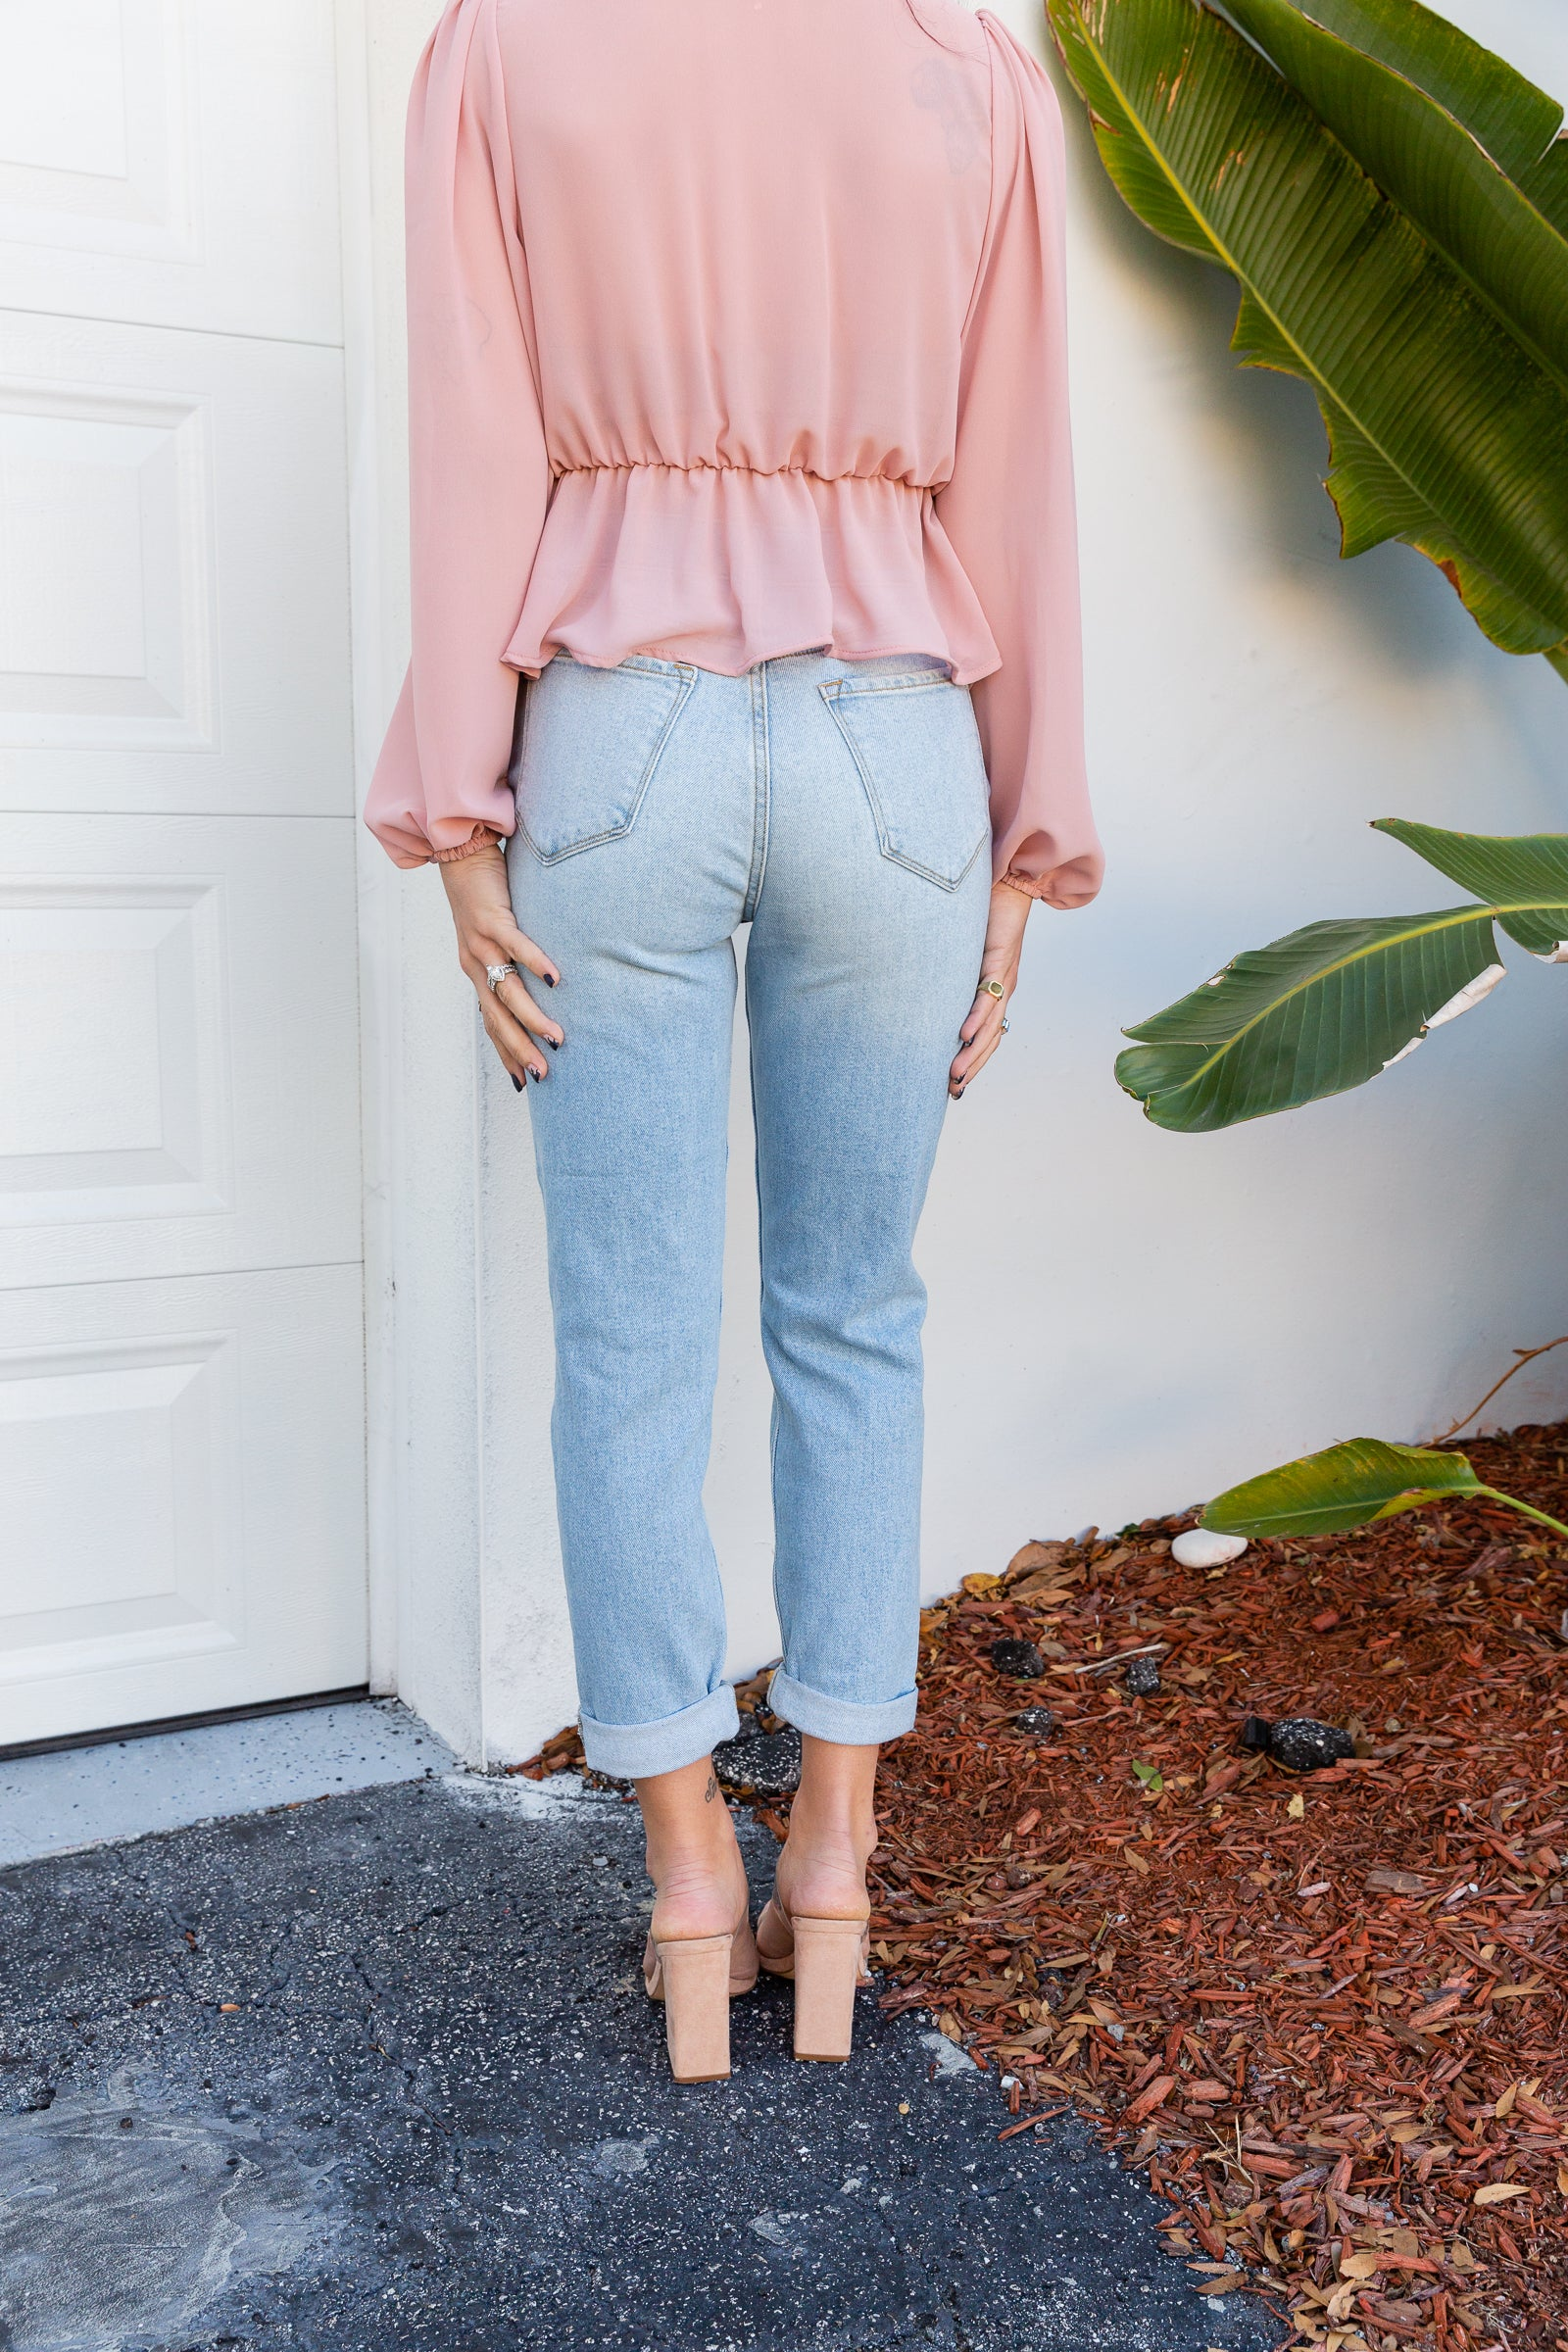 Traditional 5-pocket structure with a high button waistband that fits comfortably in a loose and mom-style silhouette. It has distress details down the pant legs to a clean ankle hem.